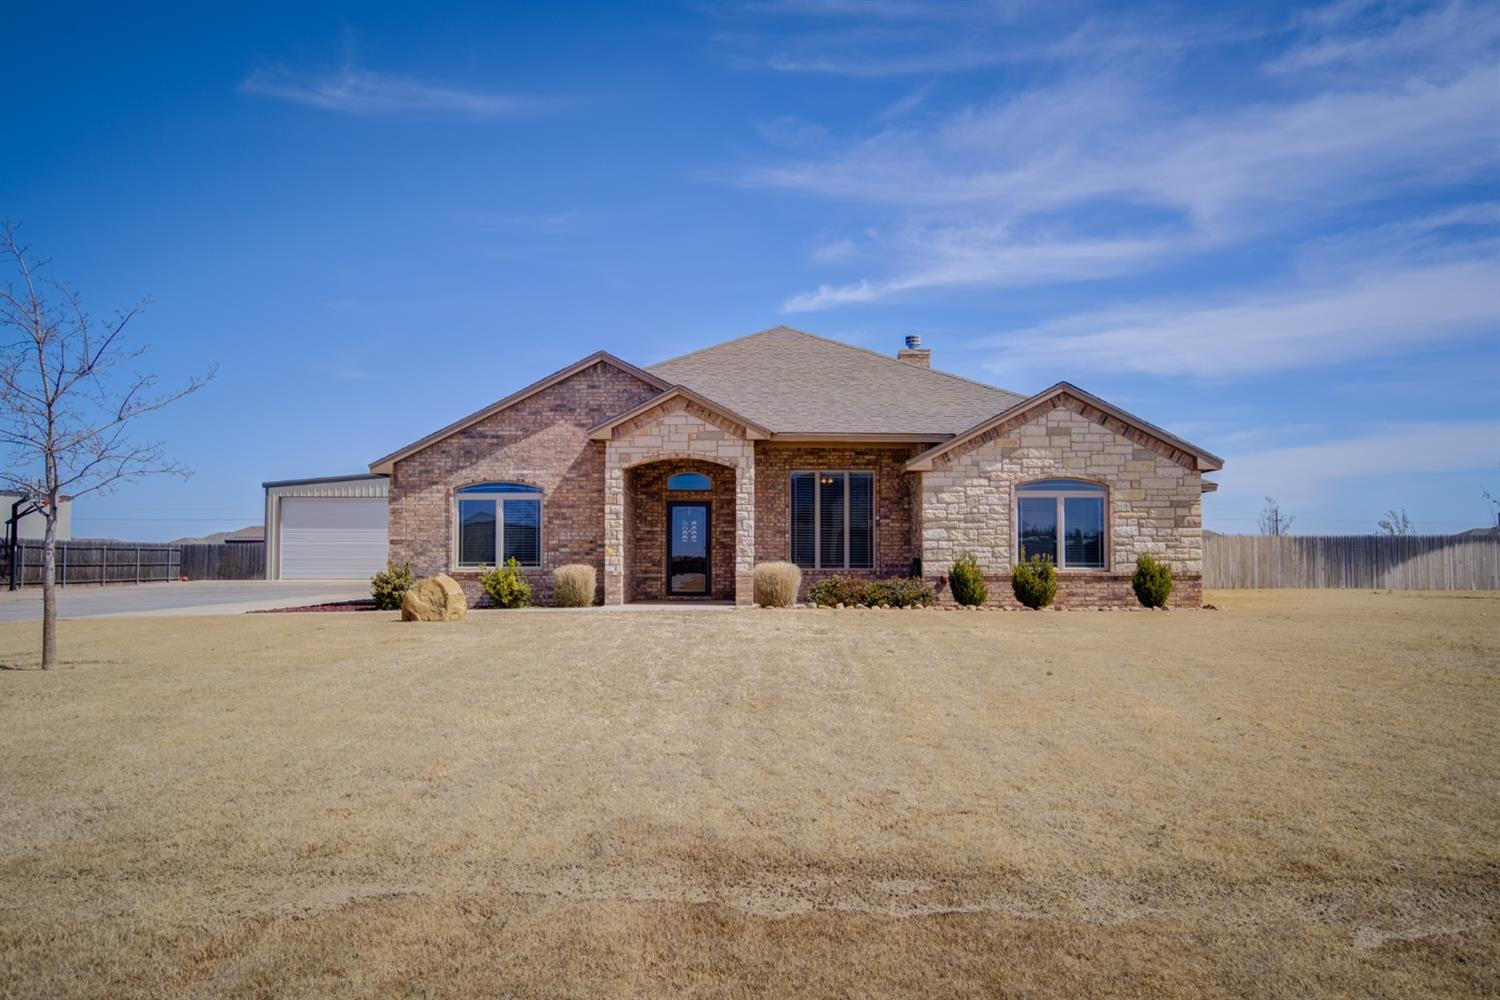 16005 County Road 2130, Lubbock in Lubbock County, TX 79423 Home for Sale